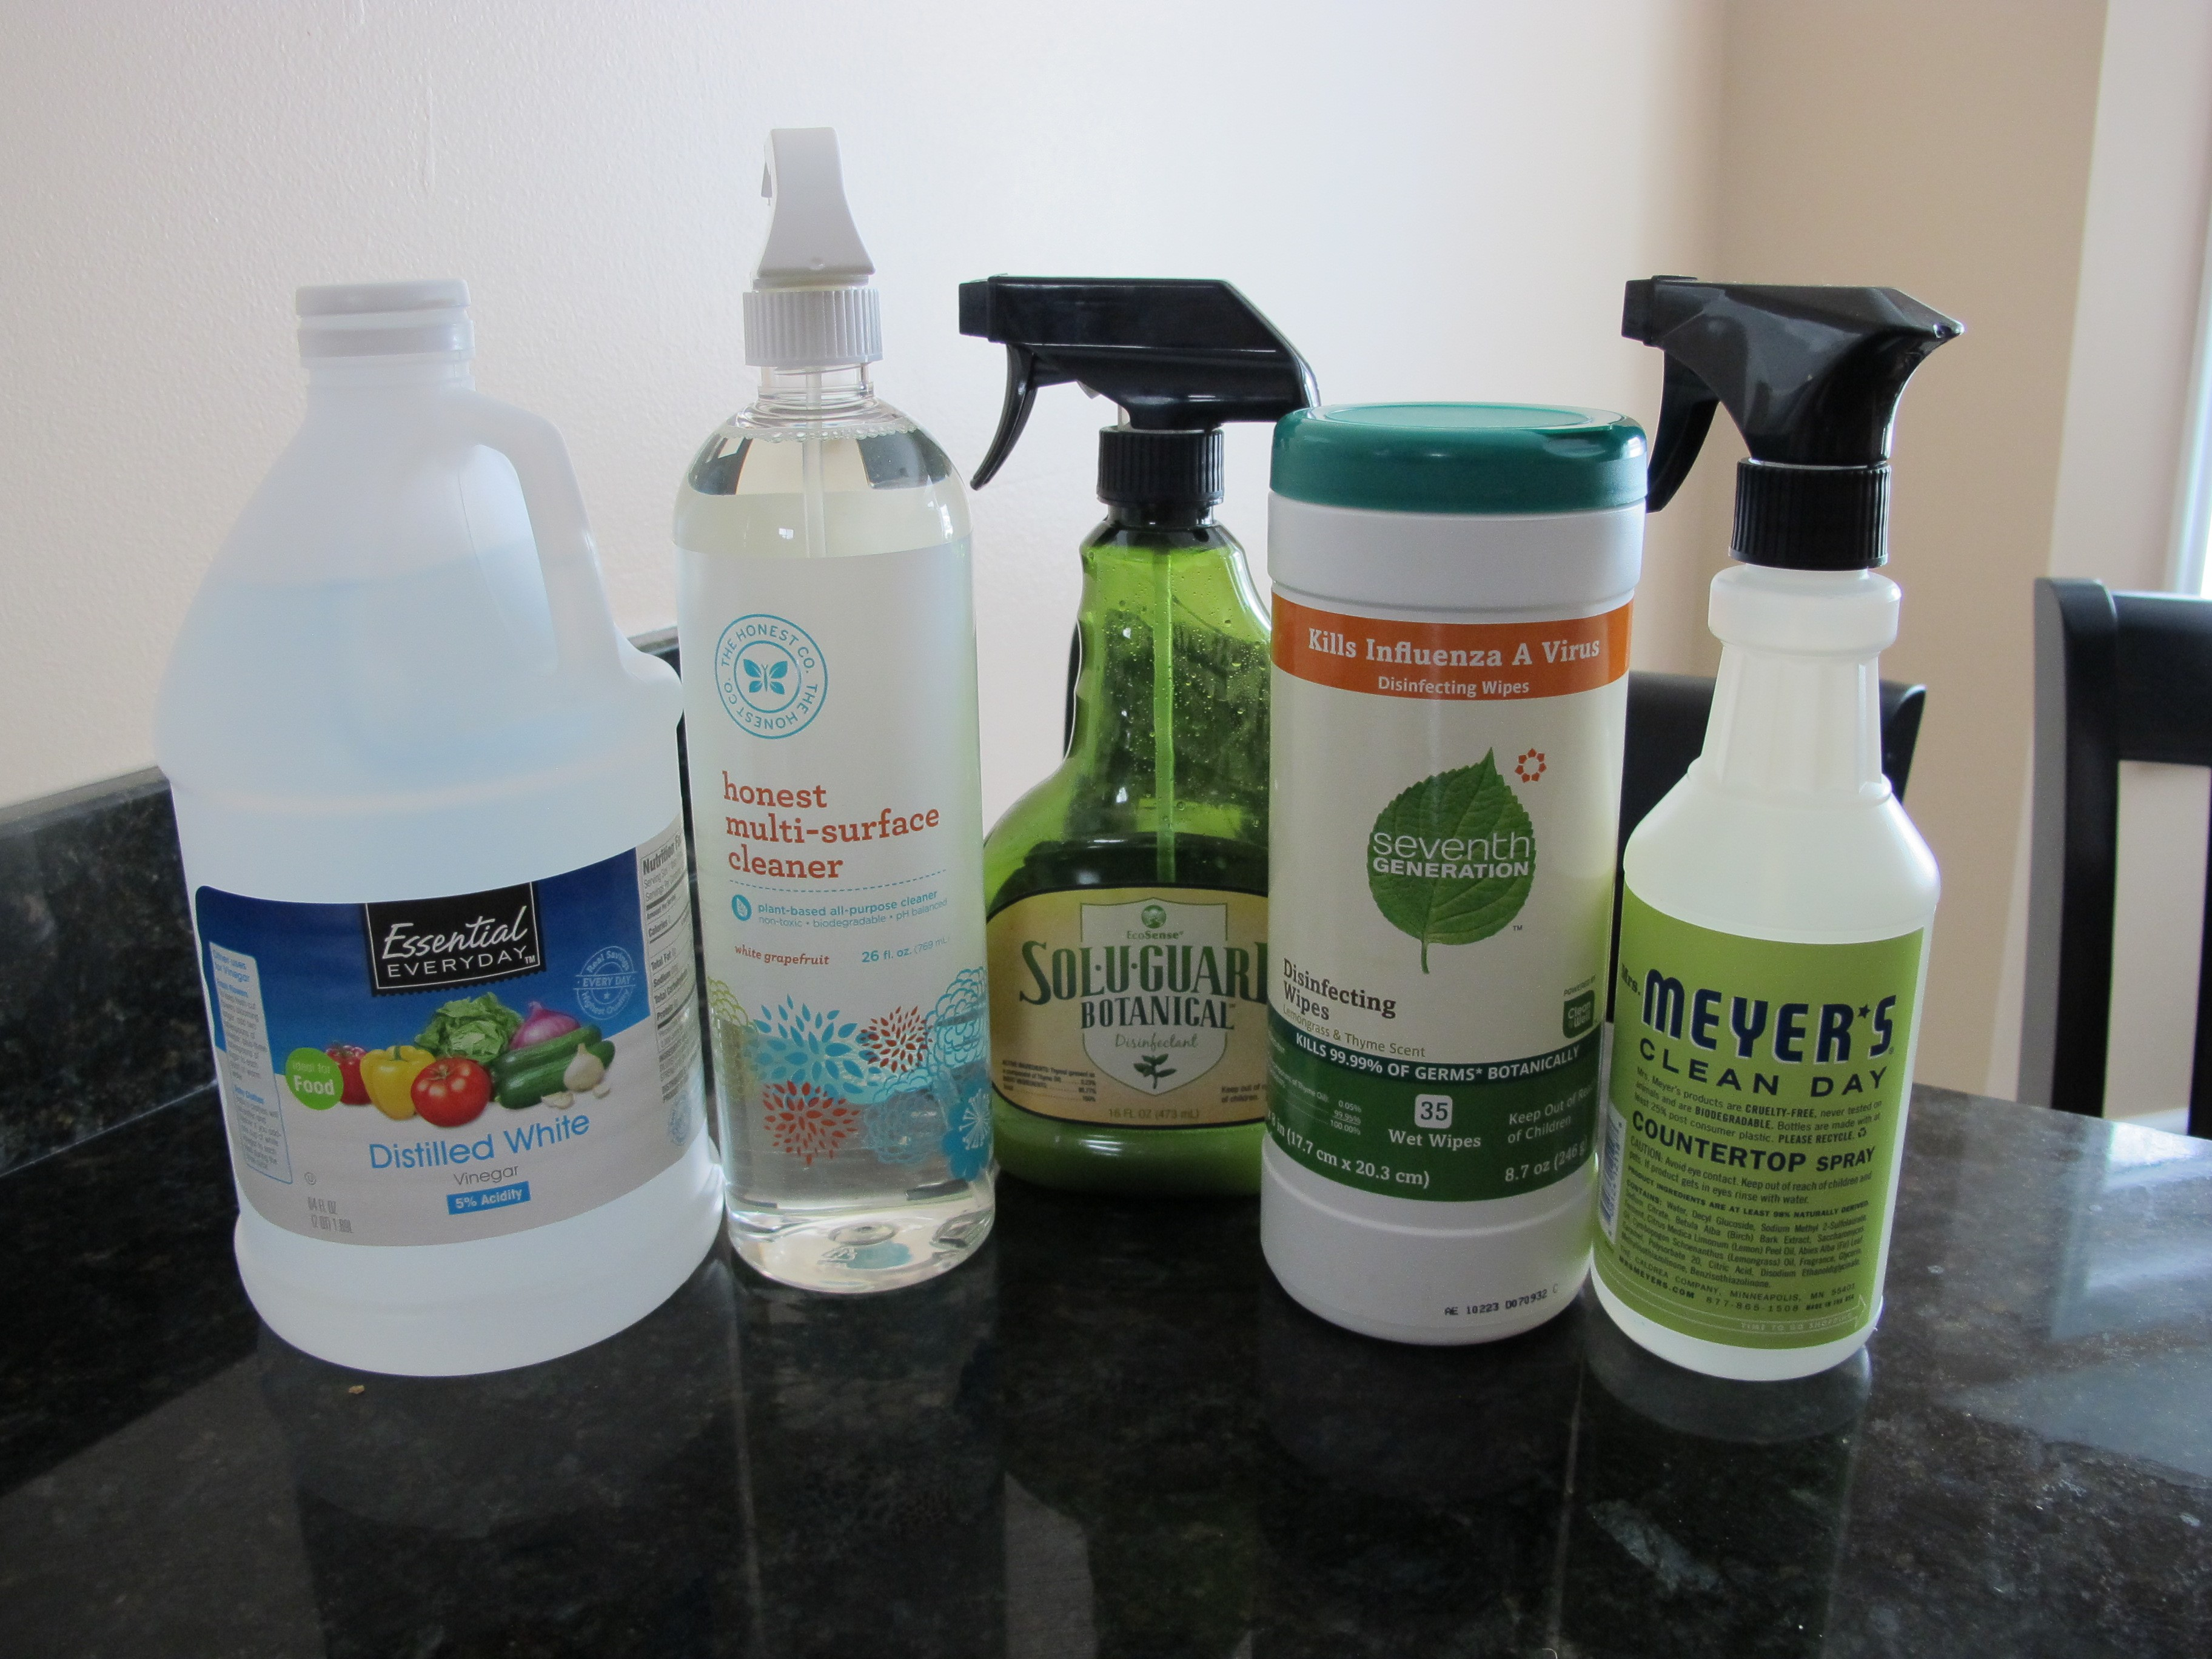 Preparing in advance thanksgiving timeline impressions for Perfect kitchen cleaner